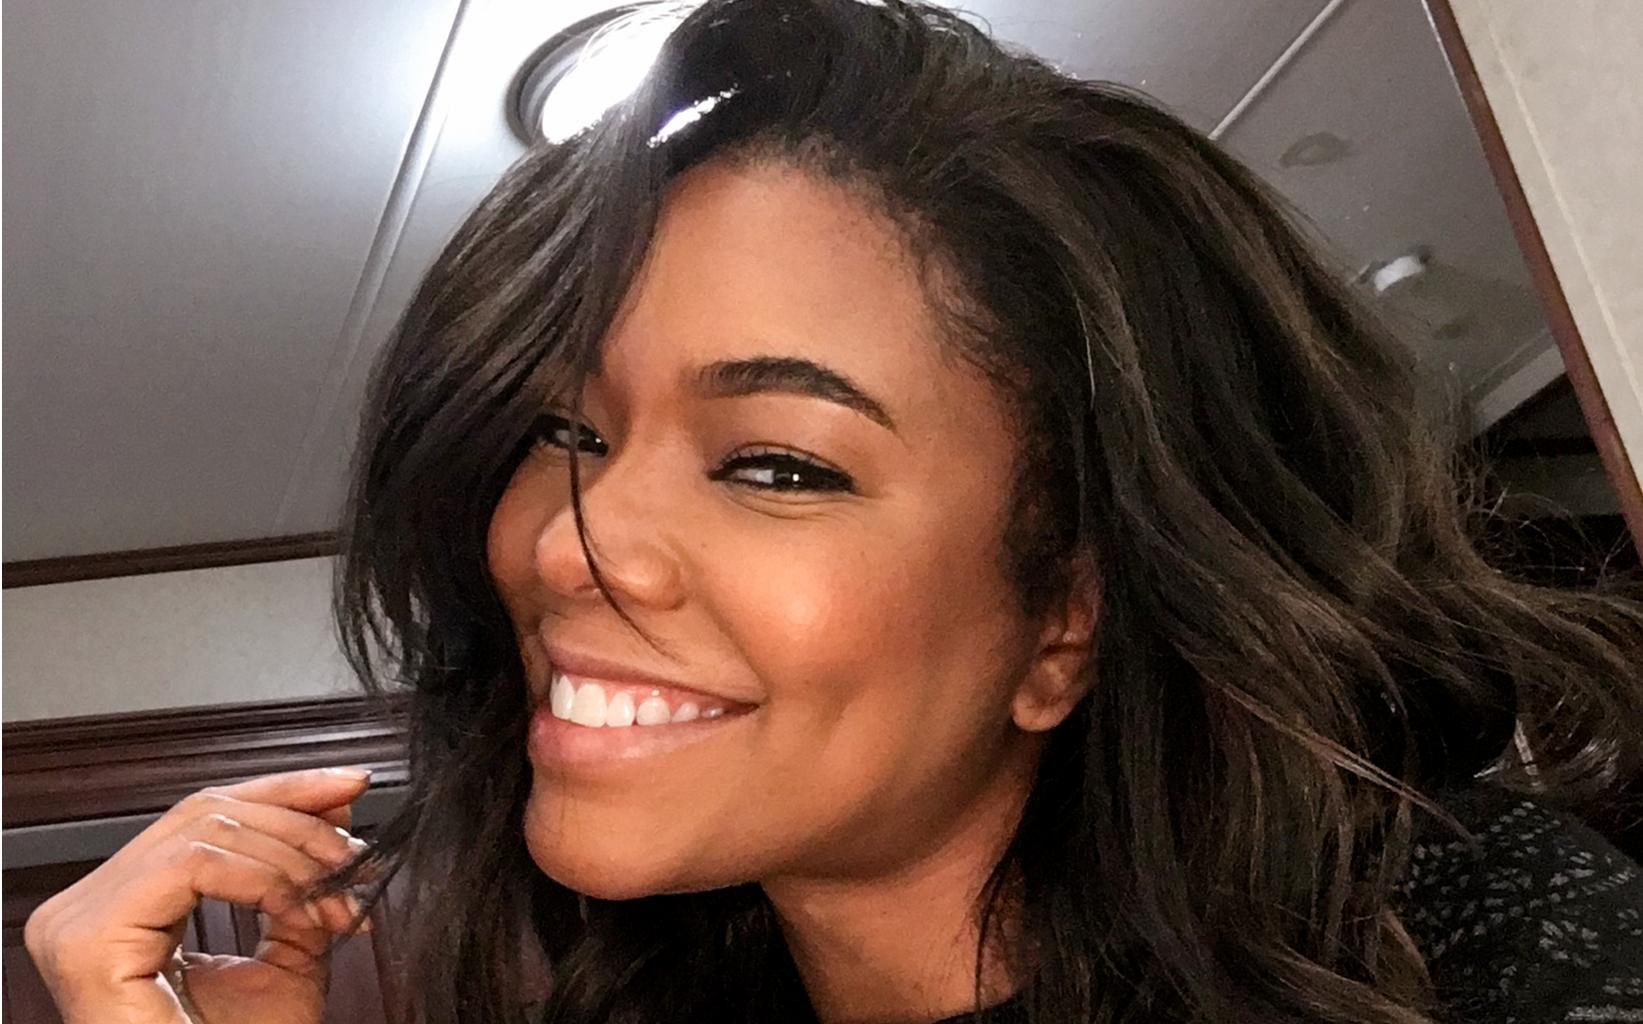 Gabrielle Union Tells Fans She Is A Truck Person - Check Out Her Clip Here